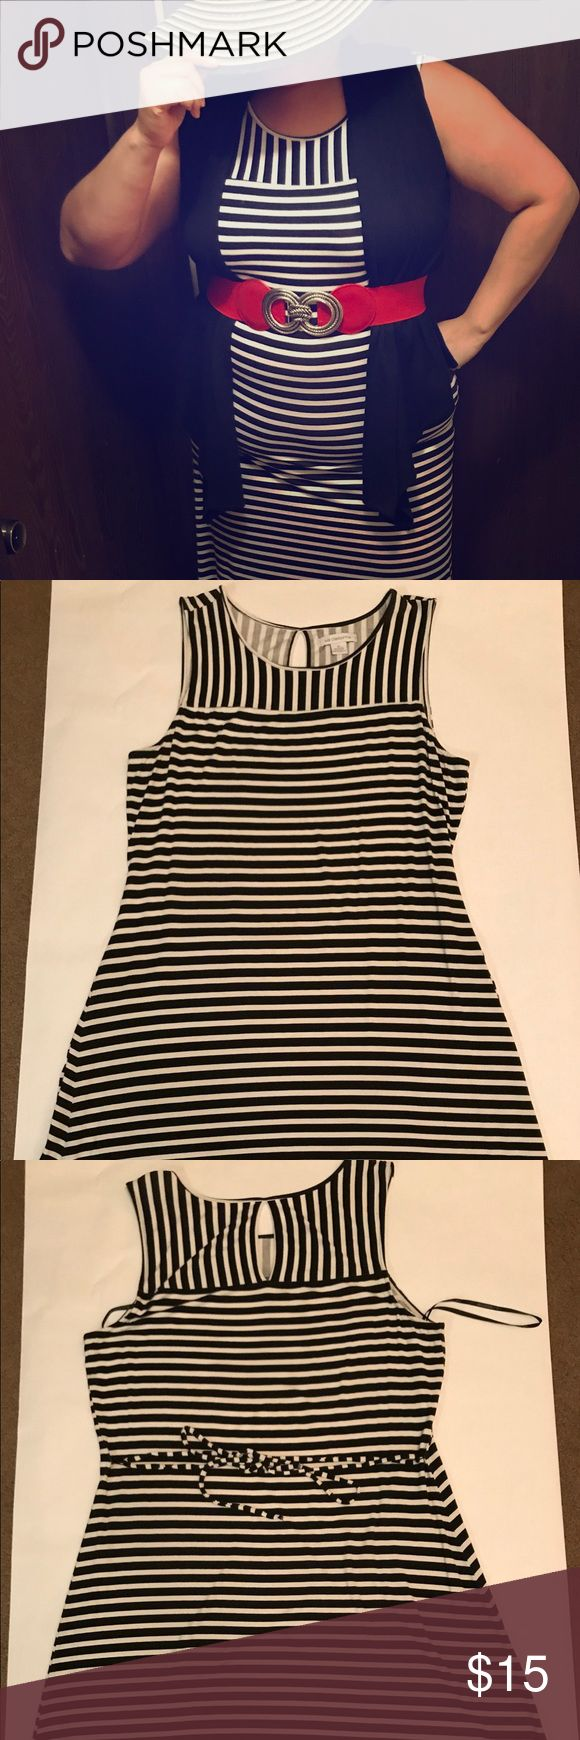 """Liz Claiborne Black &White Stripe 👗 Gently used Liz Claiborne White and Black Horizontal Sleeveless Dress.   Super Cute Spring Dress 👗 can dress it up a bit or wear as is.   Very stretchy - definitely a dress that hugs all the curves and highlights the body.   Size XL  Material: 95% Rayon 5% Spandex  Measurements: Armpits to the bottom 29"""" Back of the dress to the bottom 37"""" Front of the dress right down the middle 35"""" Liz Claiborne Dresses"""